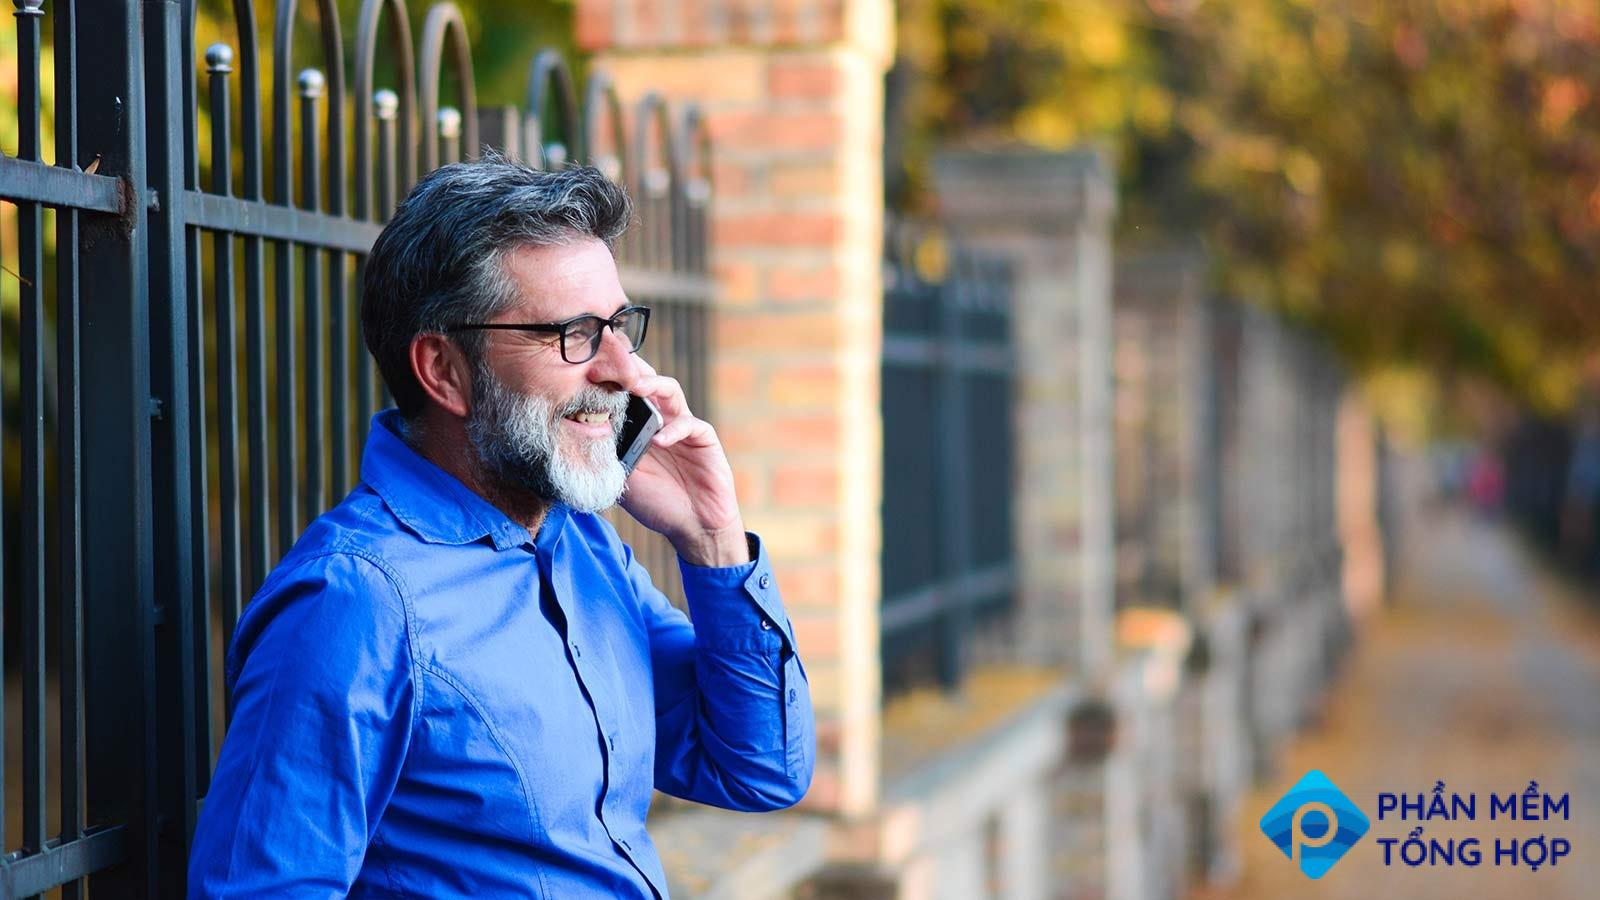 A man leaning against an iron fence, while talking on the phone.